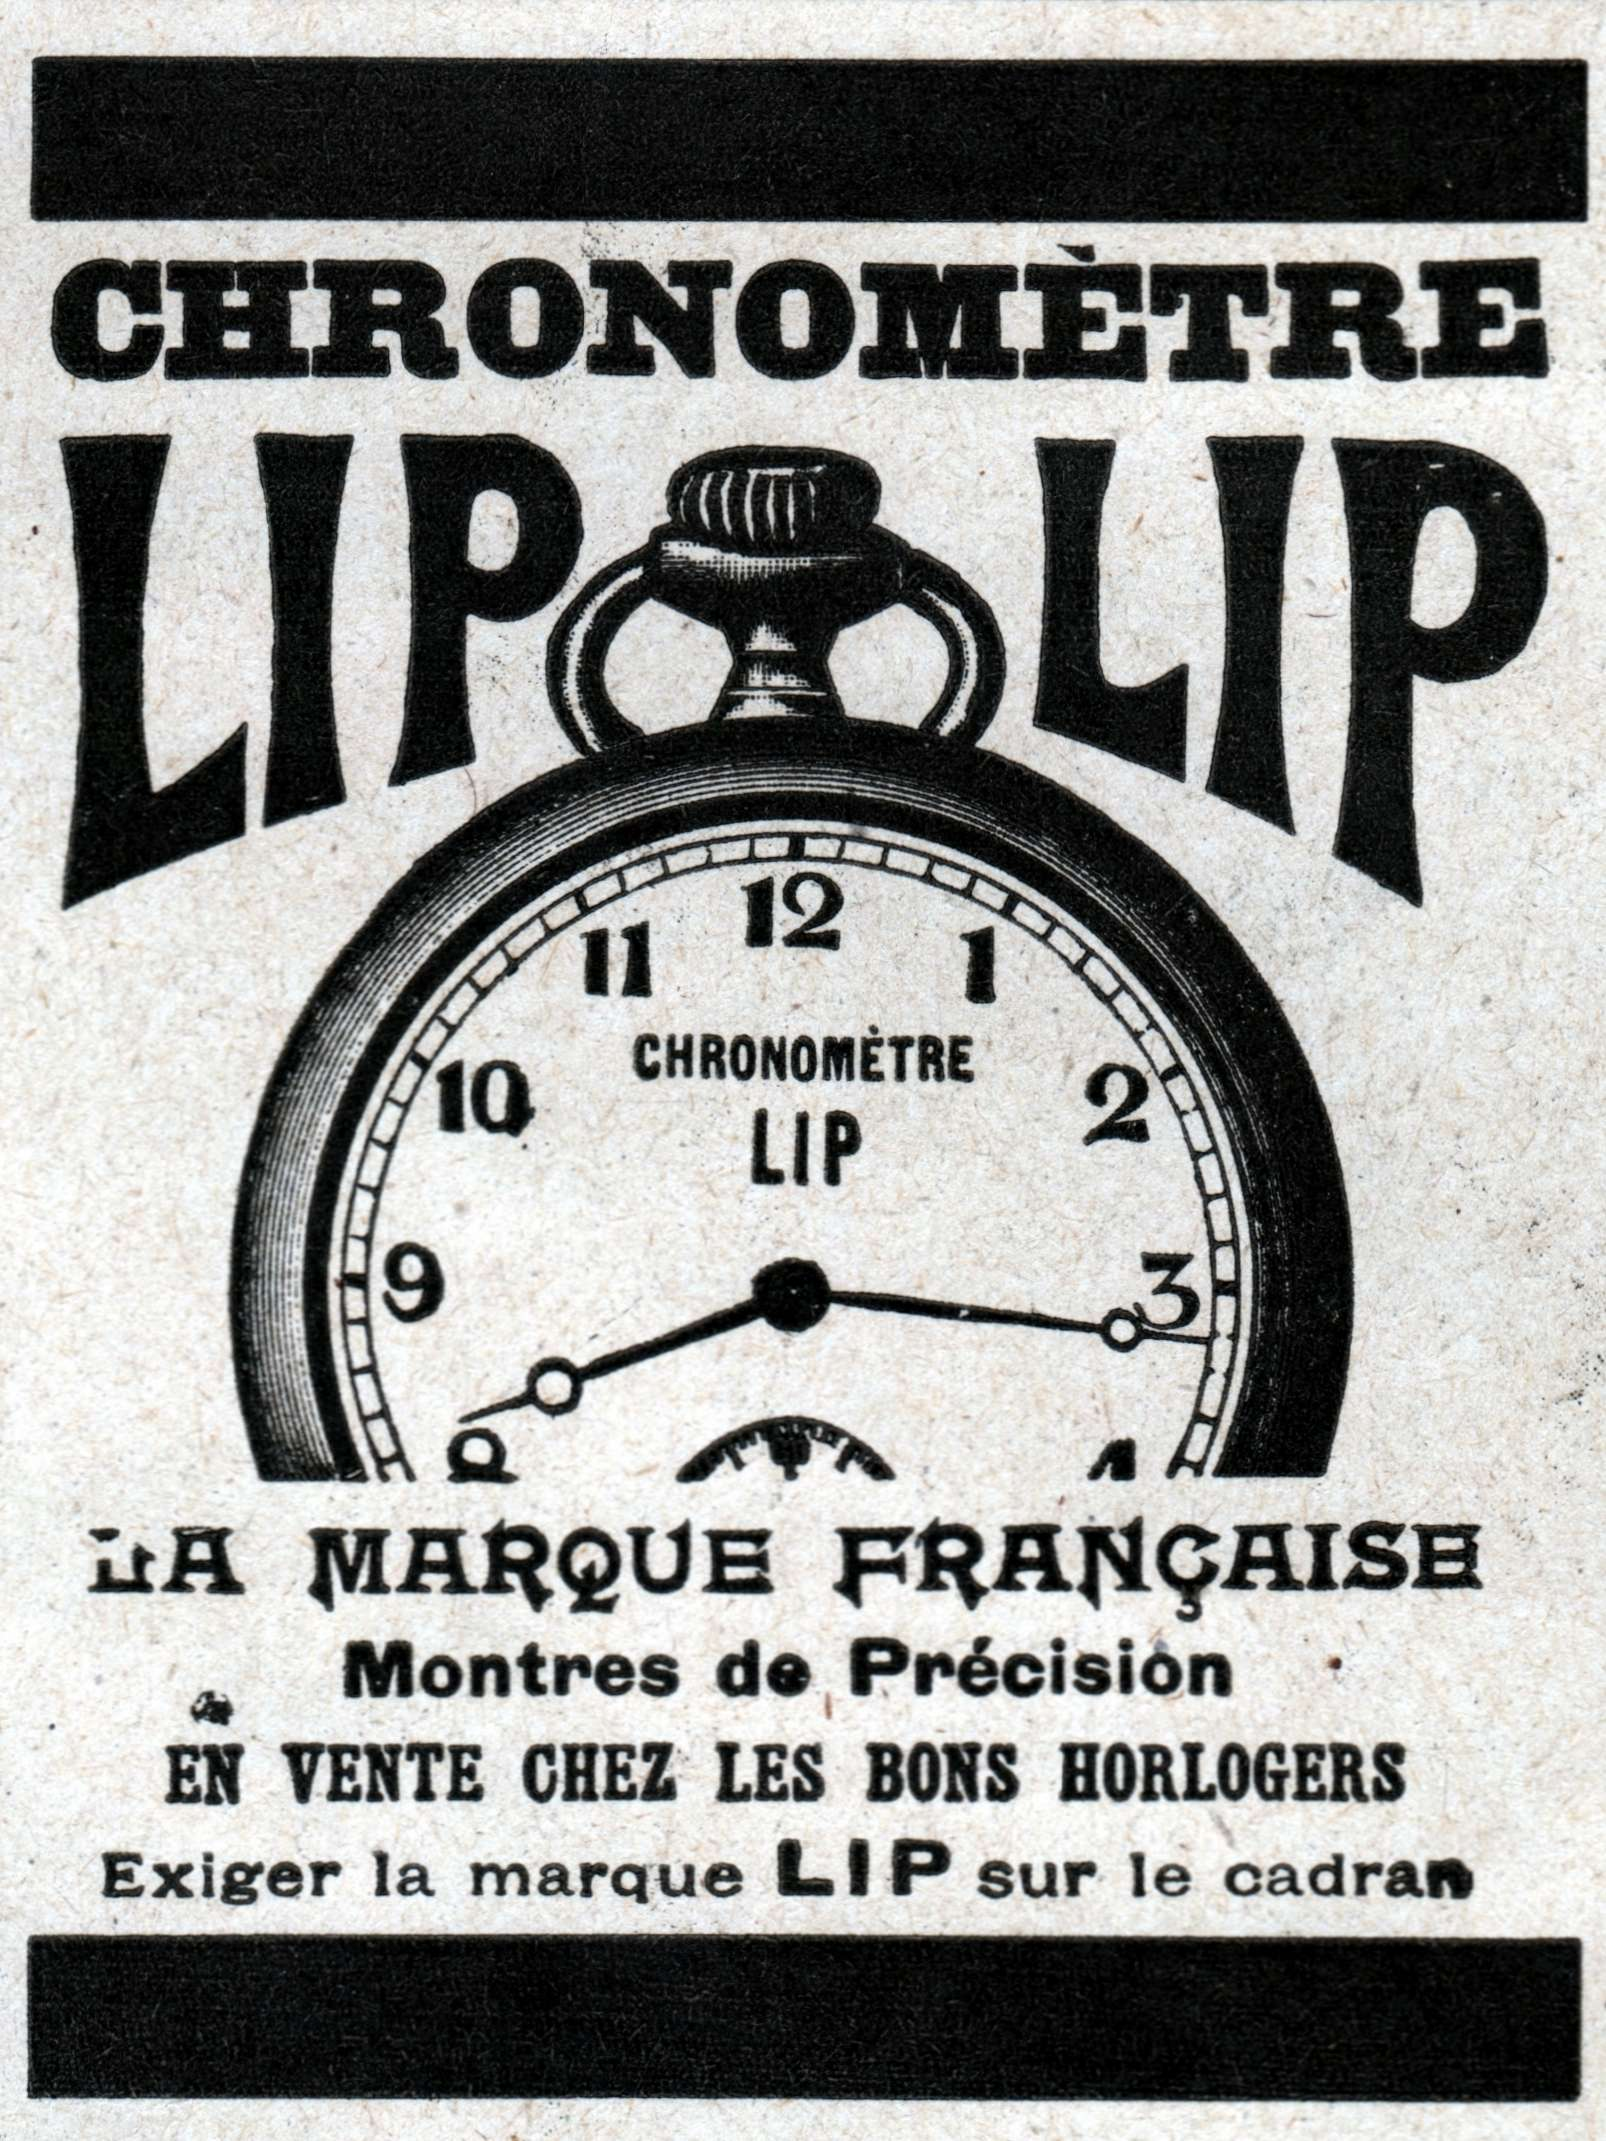 File:LIP LIP Chronomètre, No 3908 Annonces 4.jpg